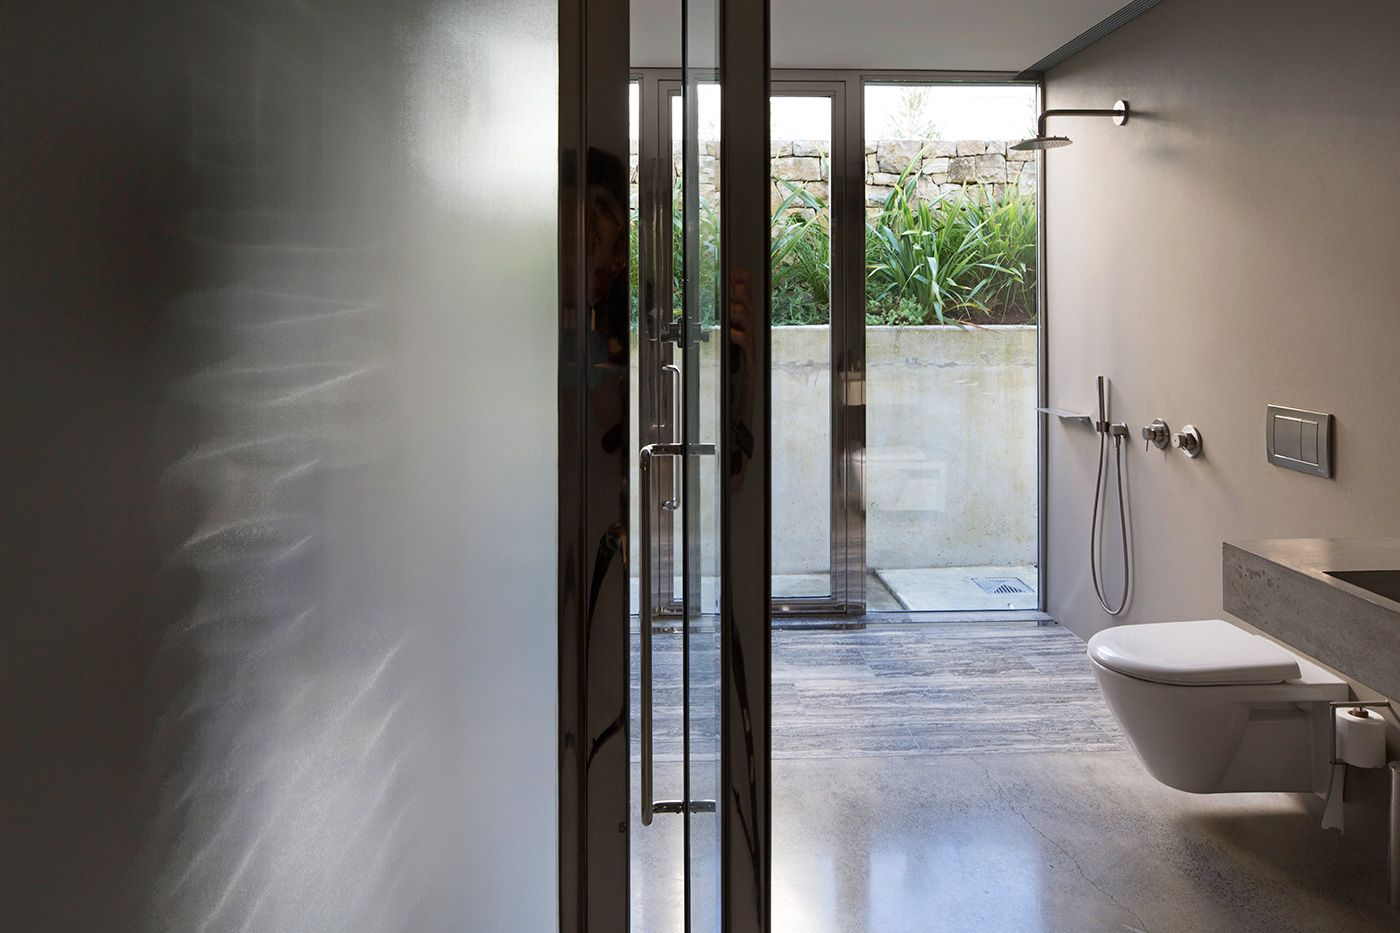 5 Bathrooms That Shun Clinical Clichés In Favour Of Rich Materials